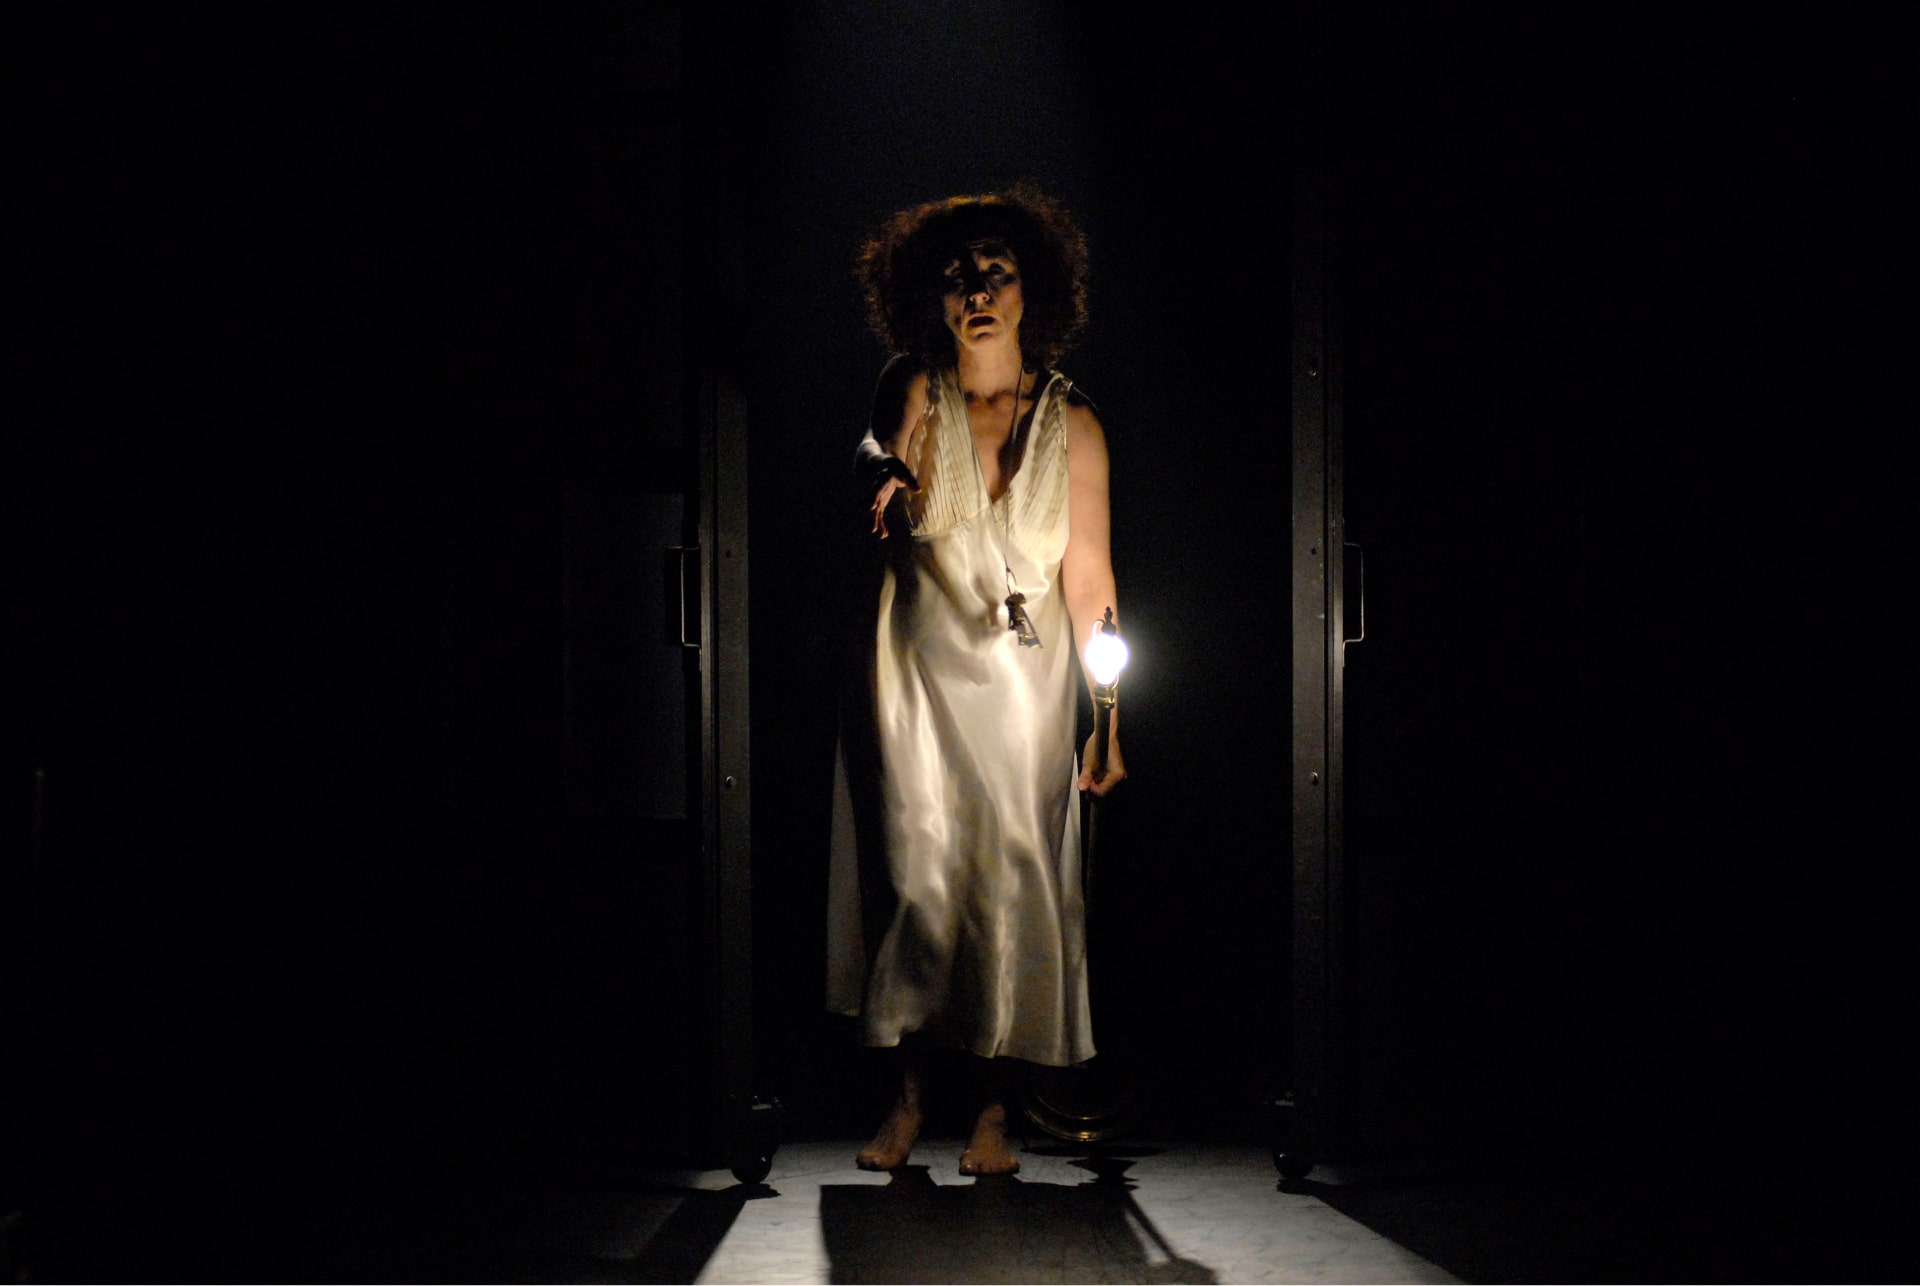 Woman in white silk slip stands backlit in doorway carrying lit unshaded floor lamp, arm outstretched.